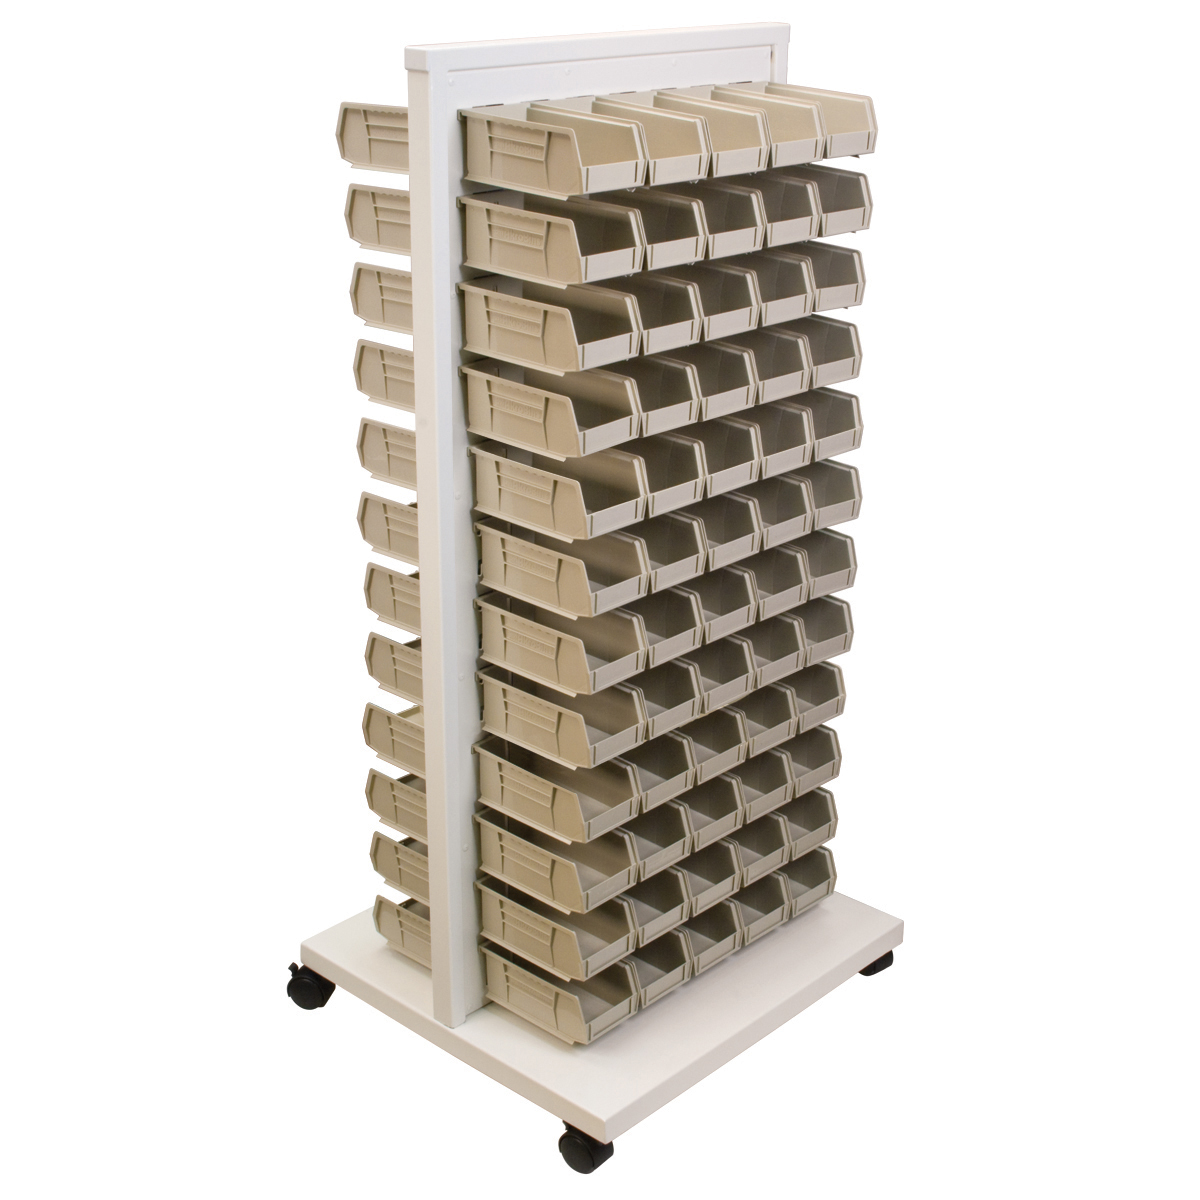 Item DISCONTINUED by Manufacturer.  ReadySpace Floor Unit w/ 120 AkroBins, 30220STONE, White (30553220S).  This item sold in carton quantities of 1.